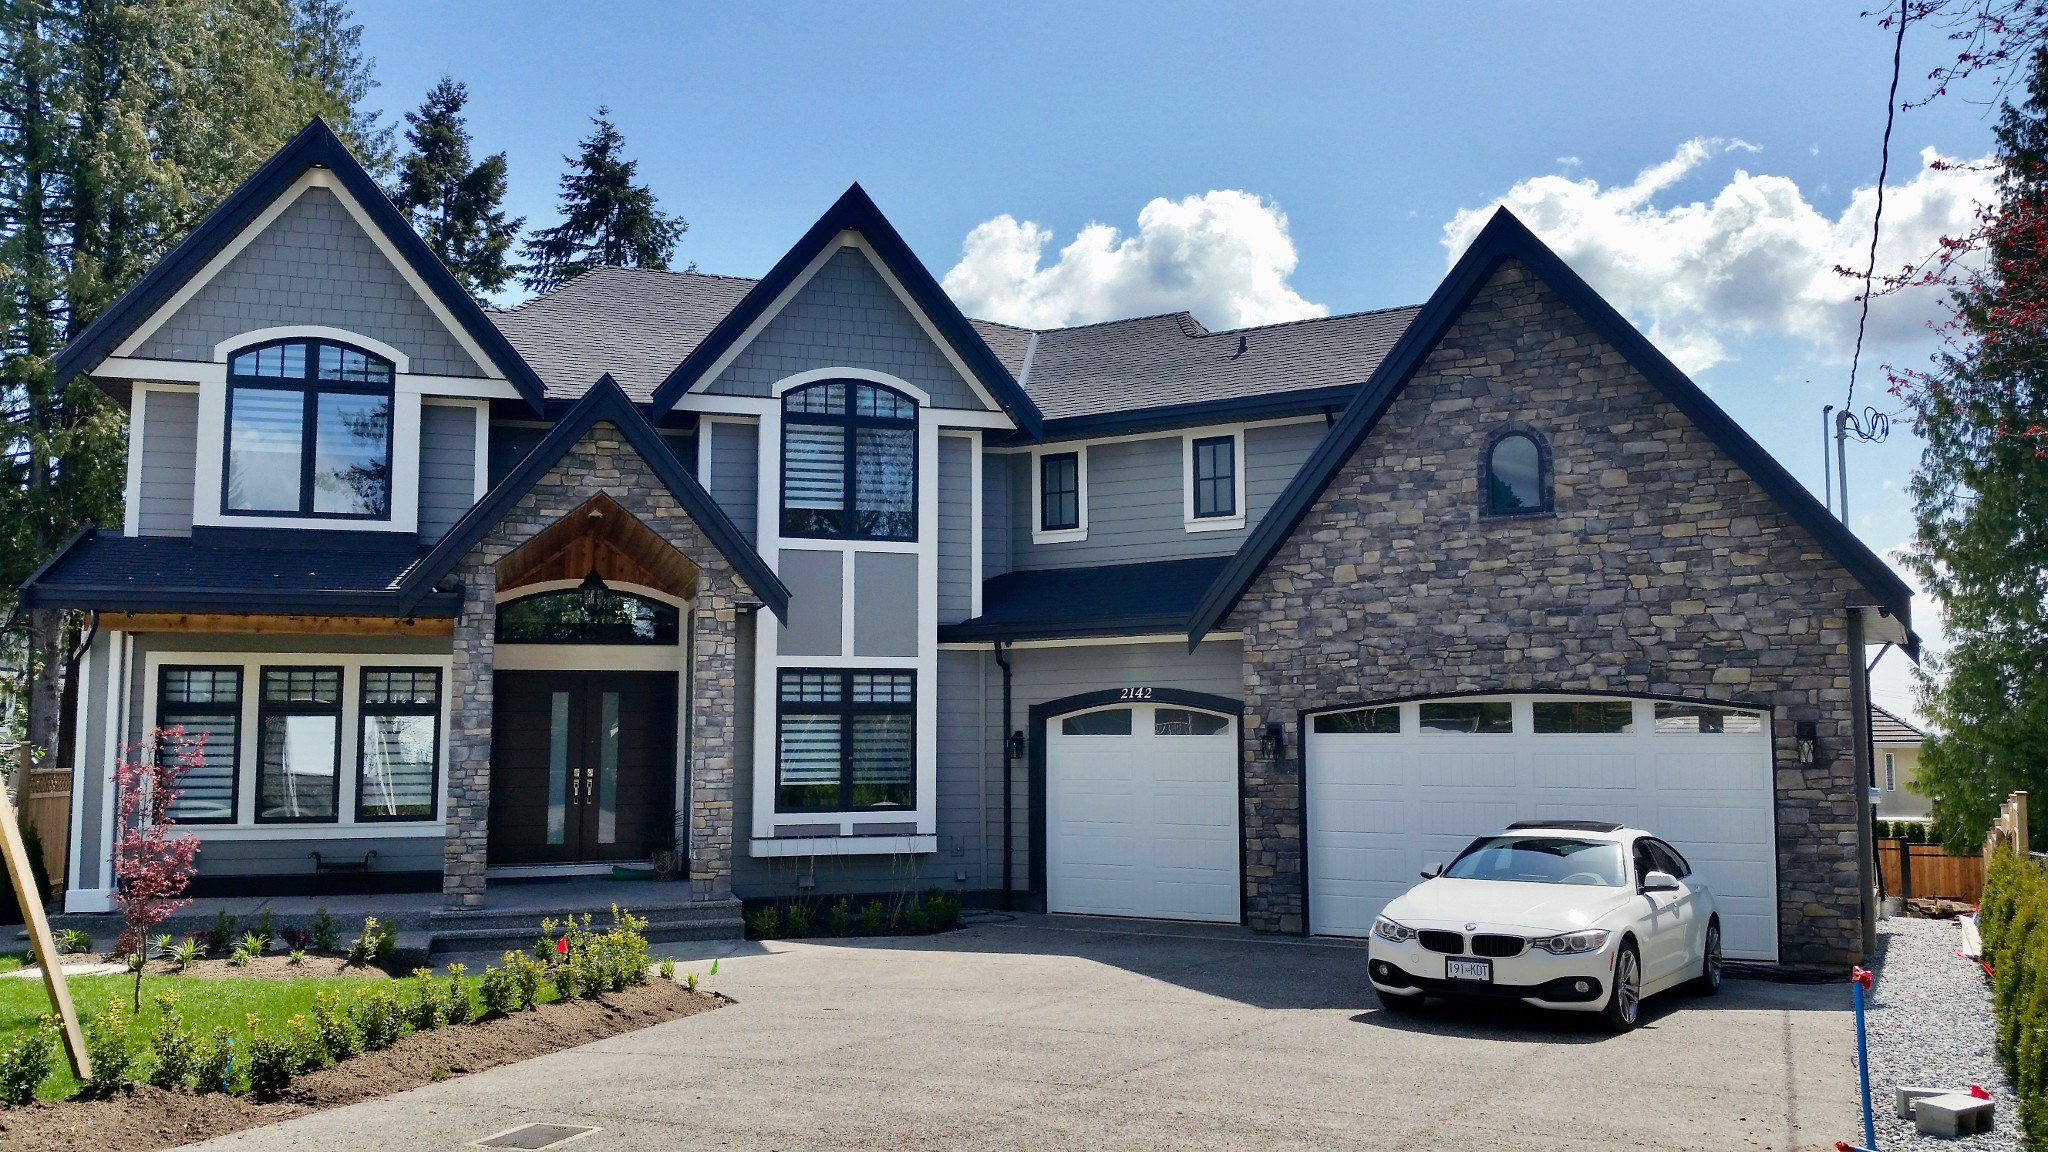 Main Photo: 2142 EDGEWOOD Avenue in Coquitlam: Central Coquitlam House for sale : MLS®# R2218676